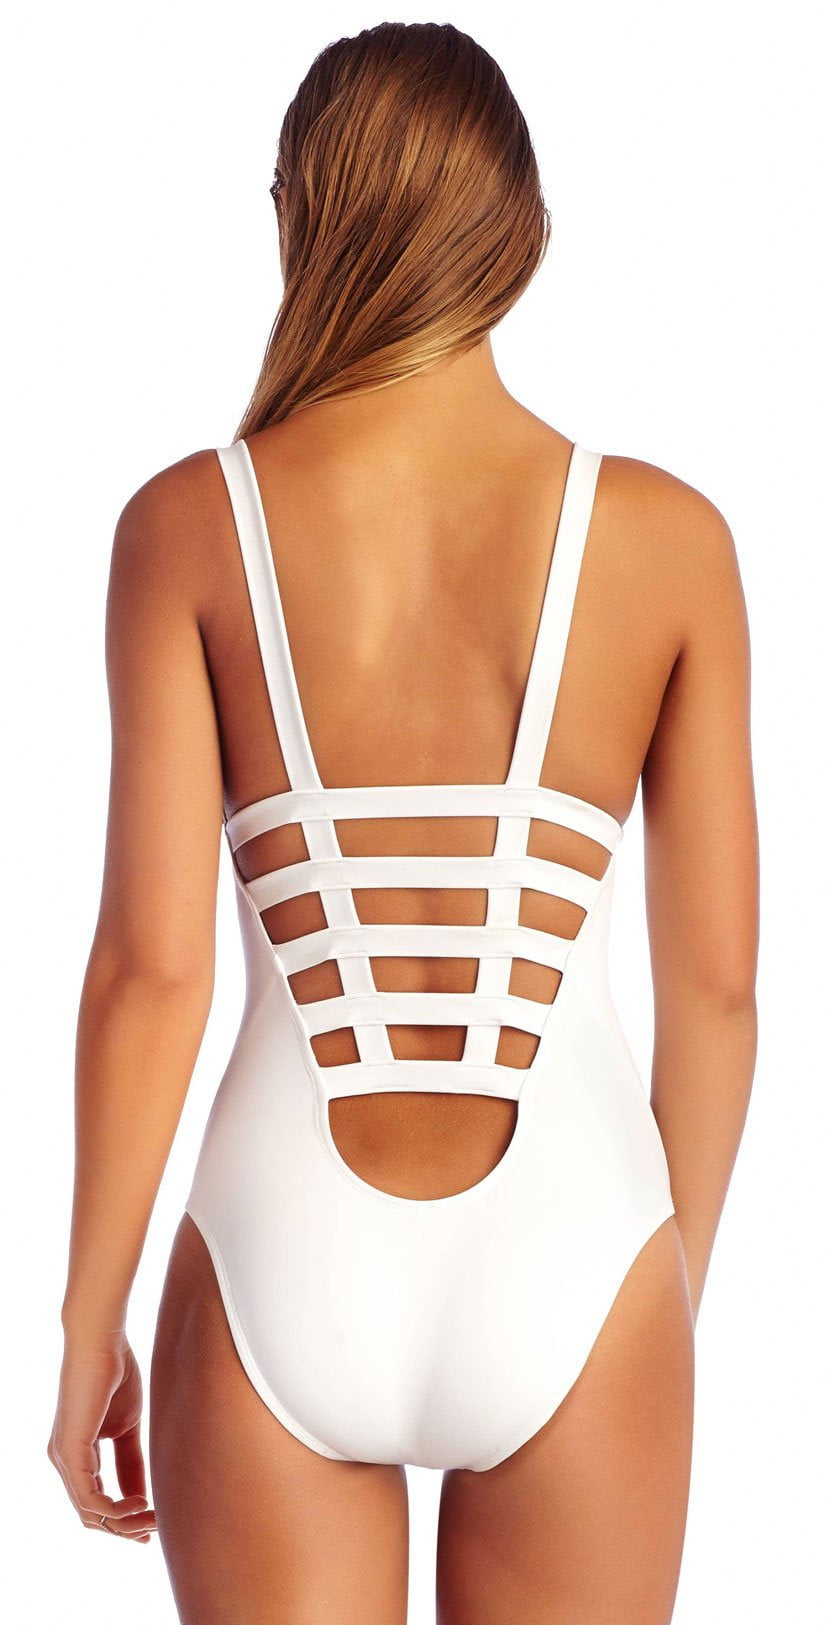 Vitamin A Neutra Maillot One Piece in Eco White 50MECW back view